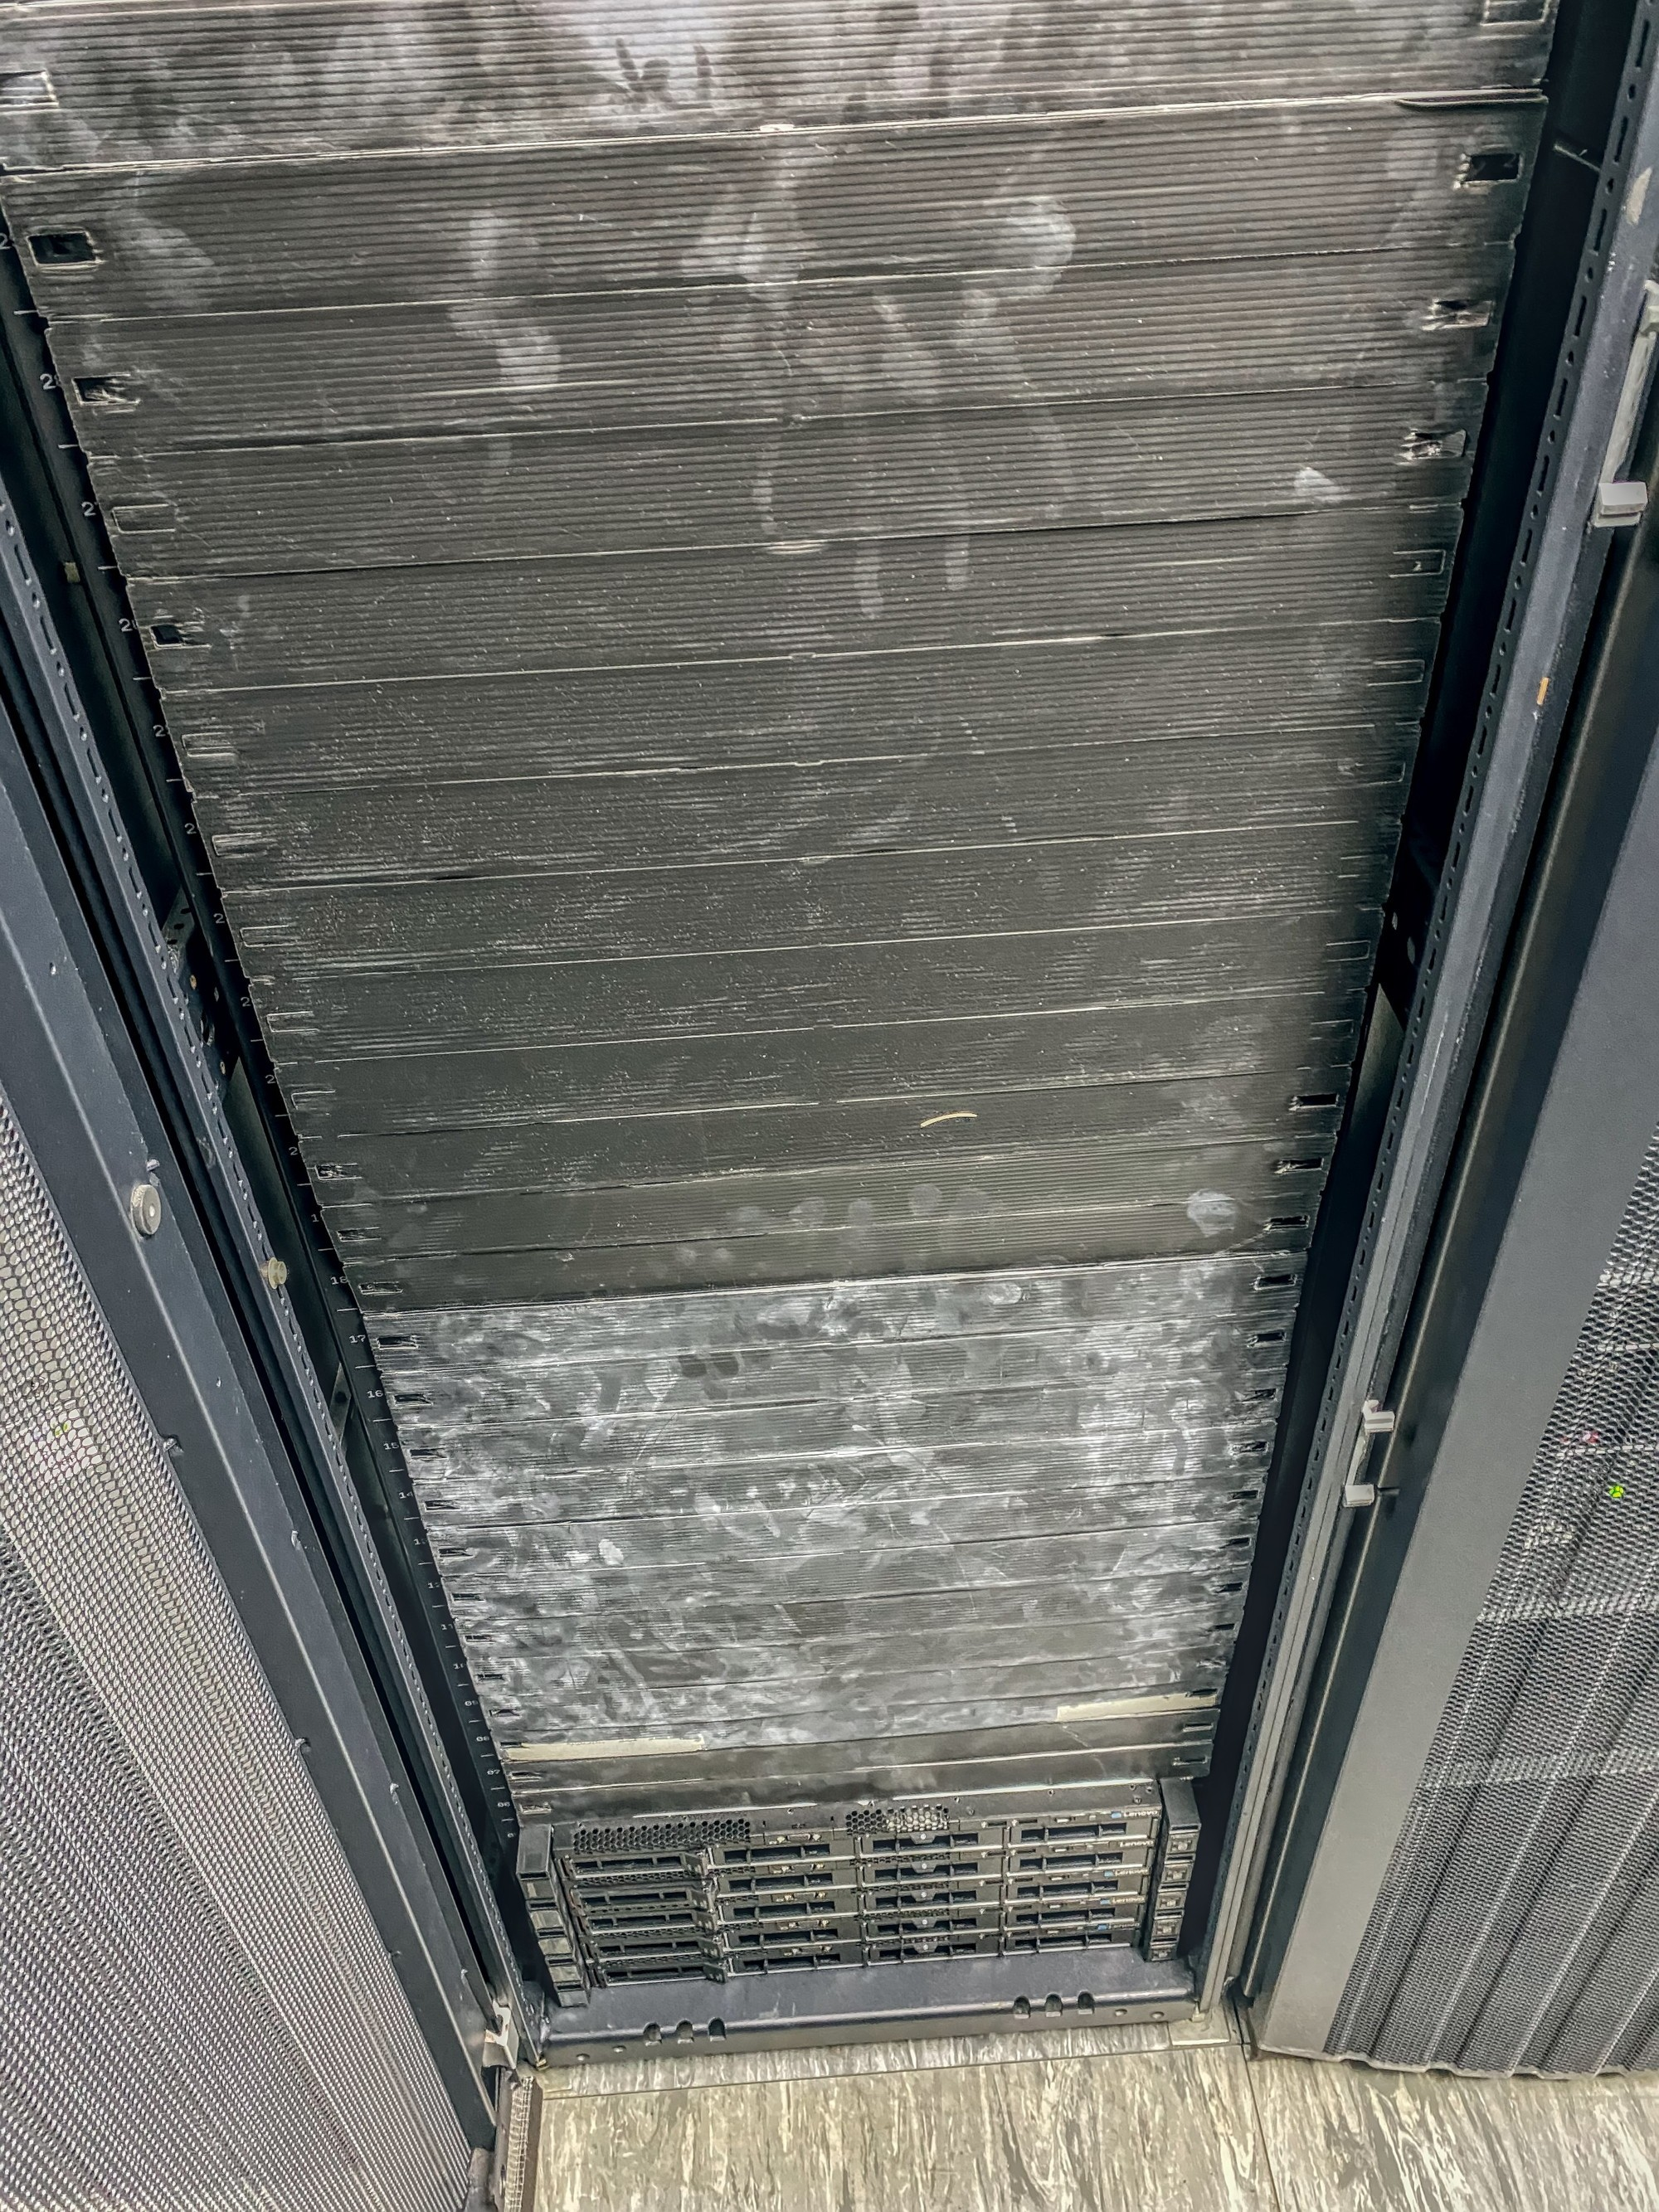 our Arm-based servers